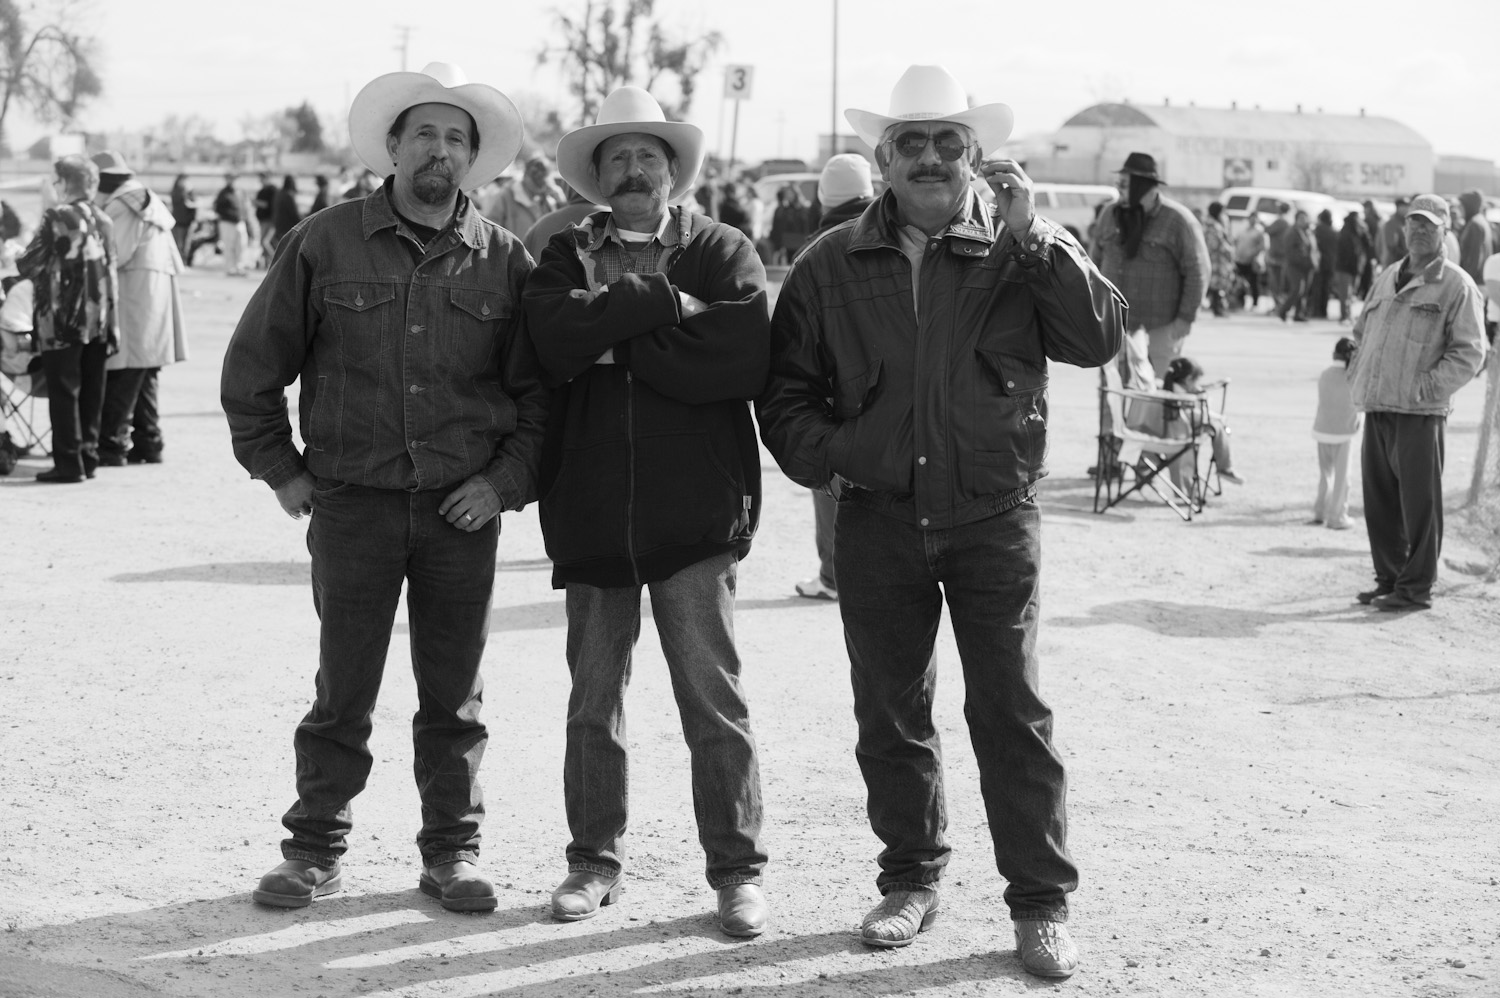 Humberto, center, has worked in many Central Valley farms for over 3 decades.